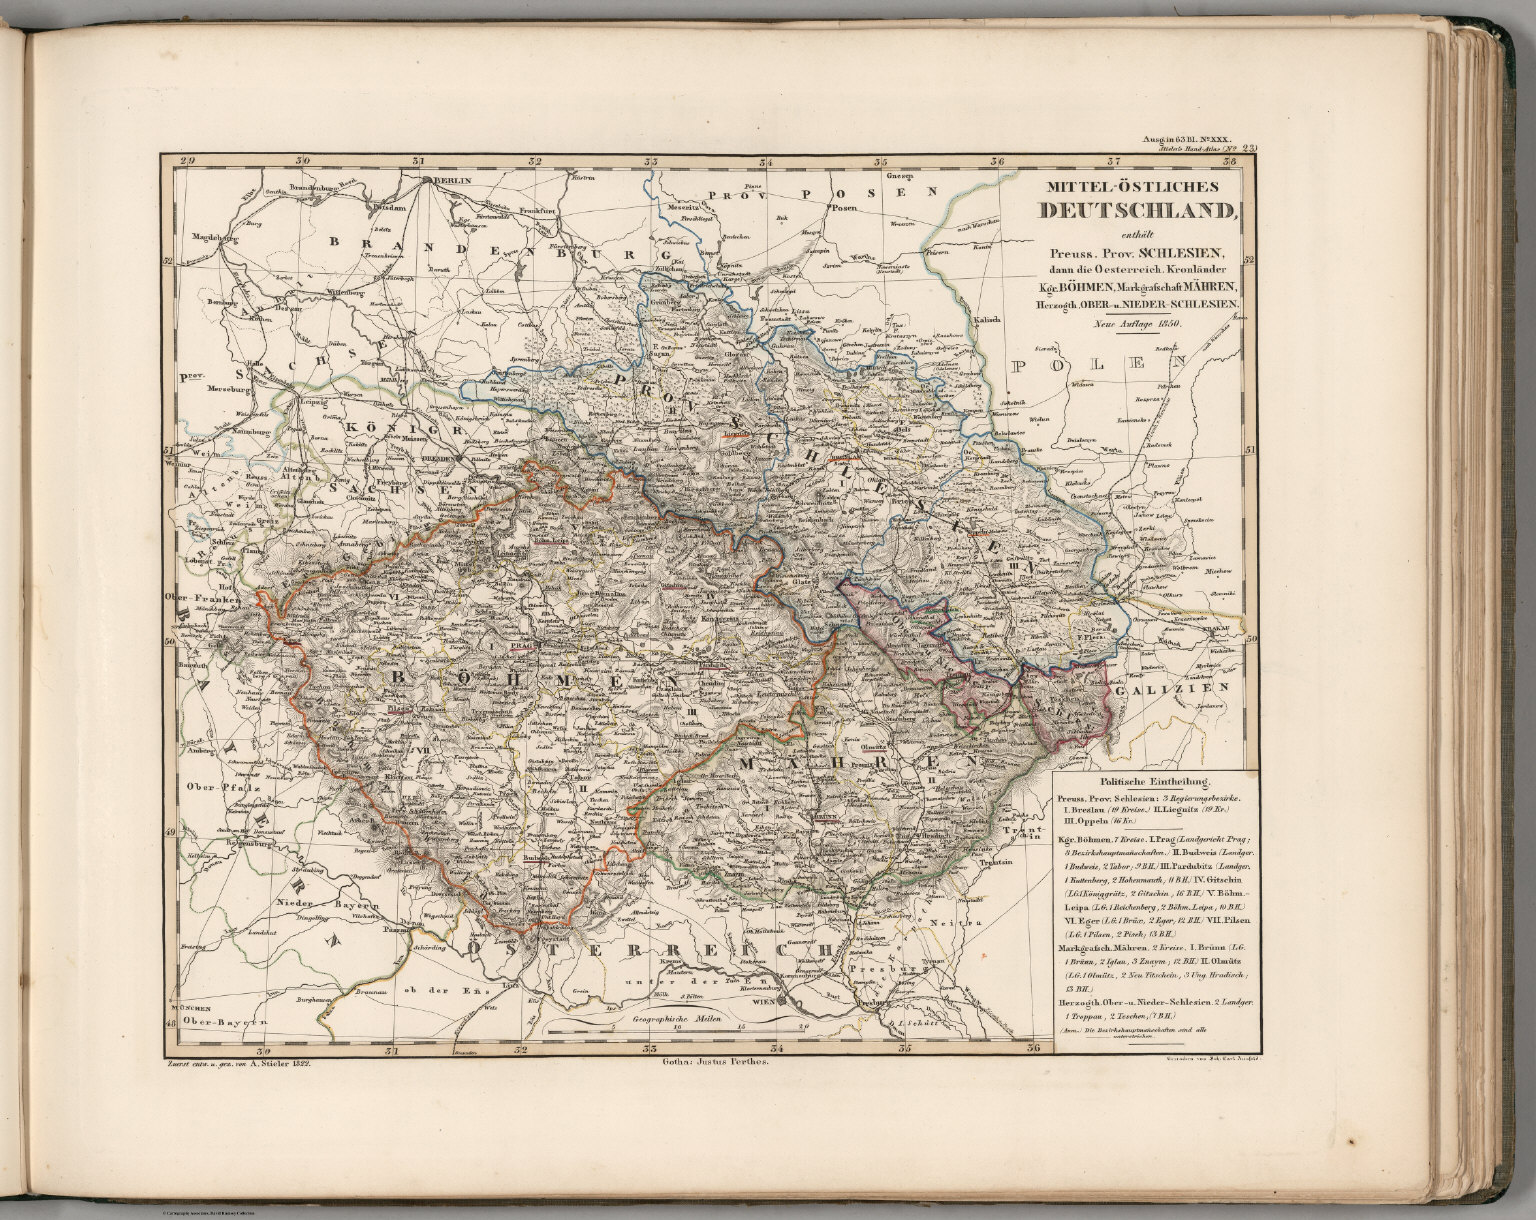 Map Of Central Germany.Mittel Ostliches Deutschland East Central Germany David Rumsey